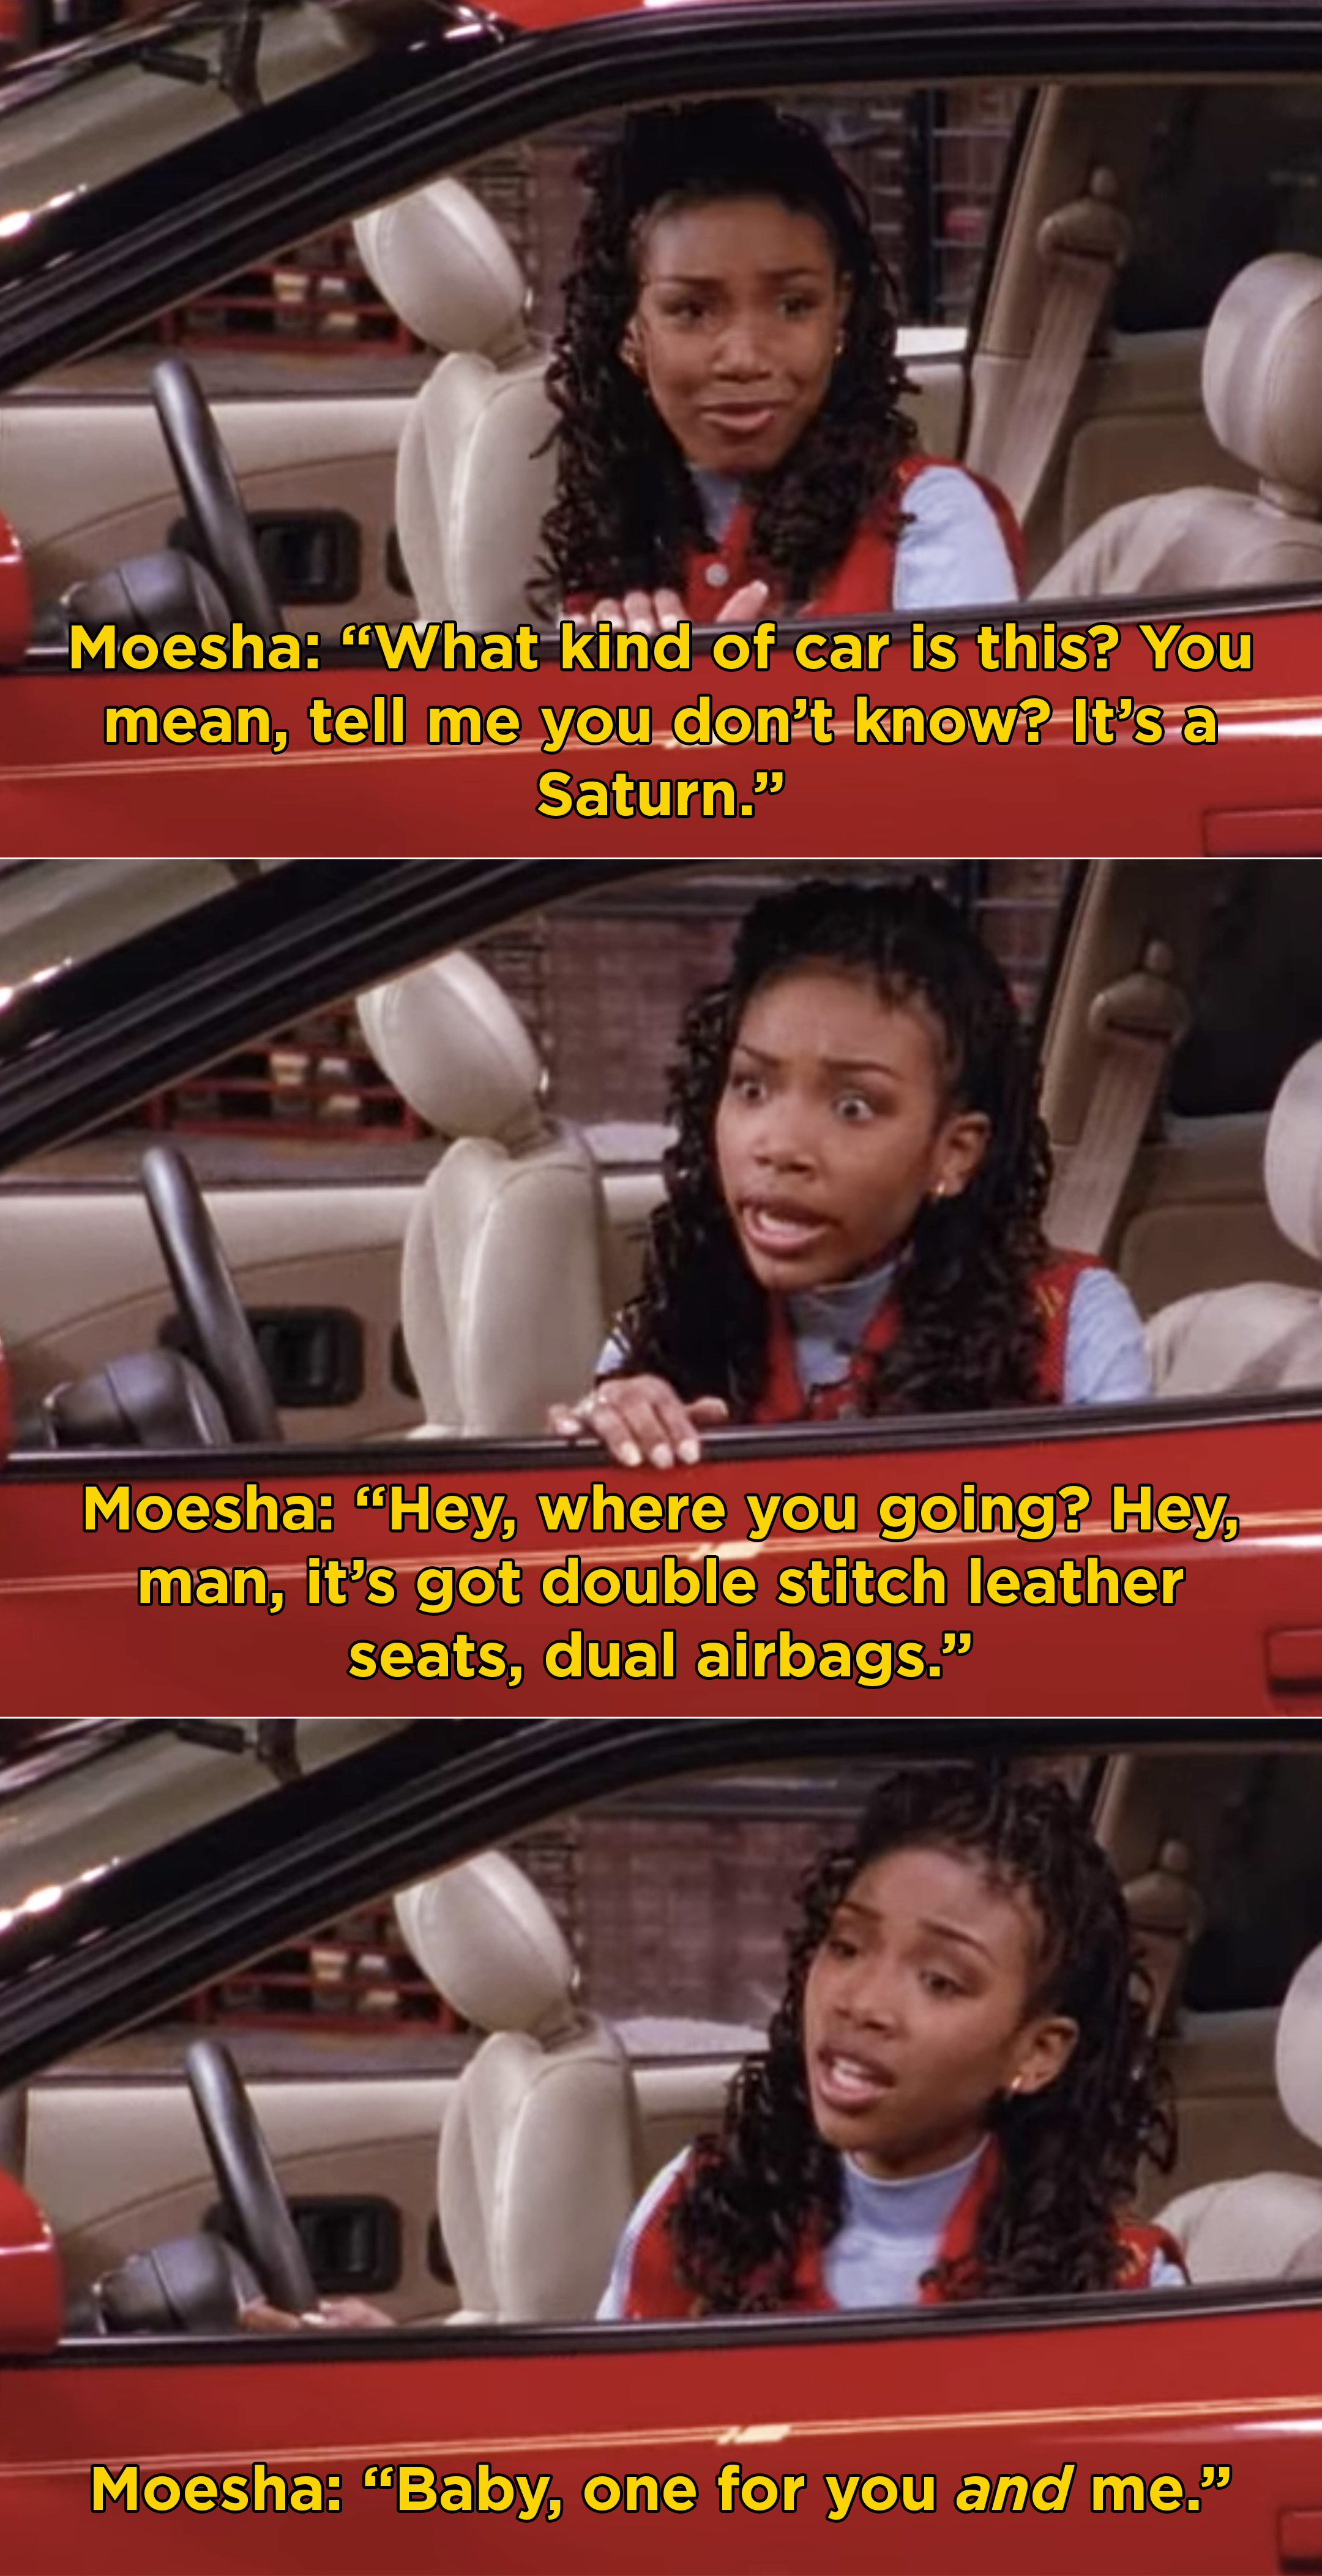 Moesha sitting in her new car and making up a scenario where a boy doesn't like her because of the car she drives